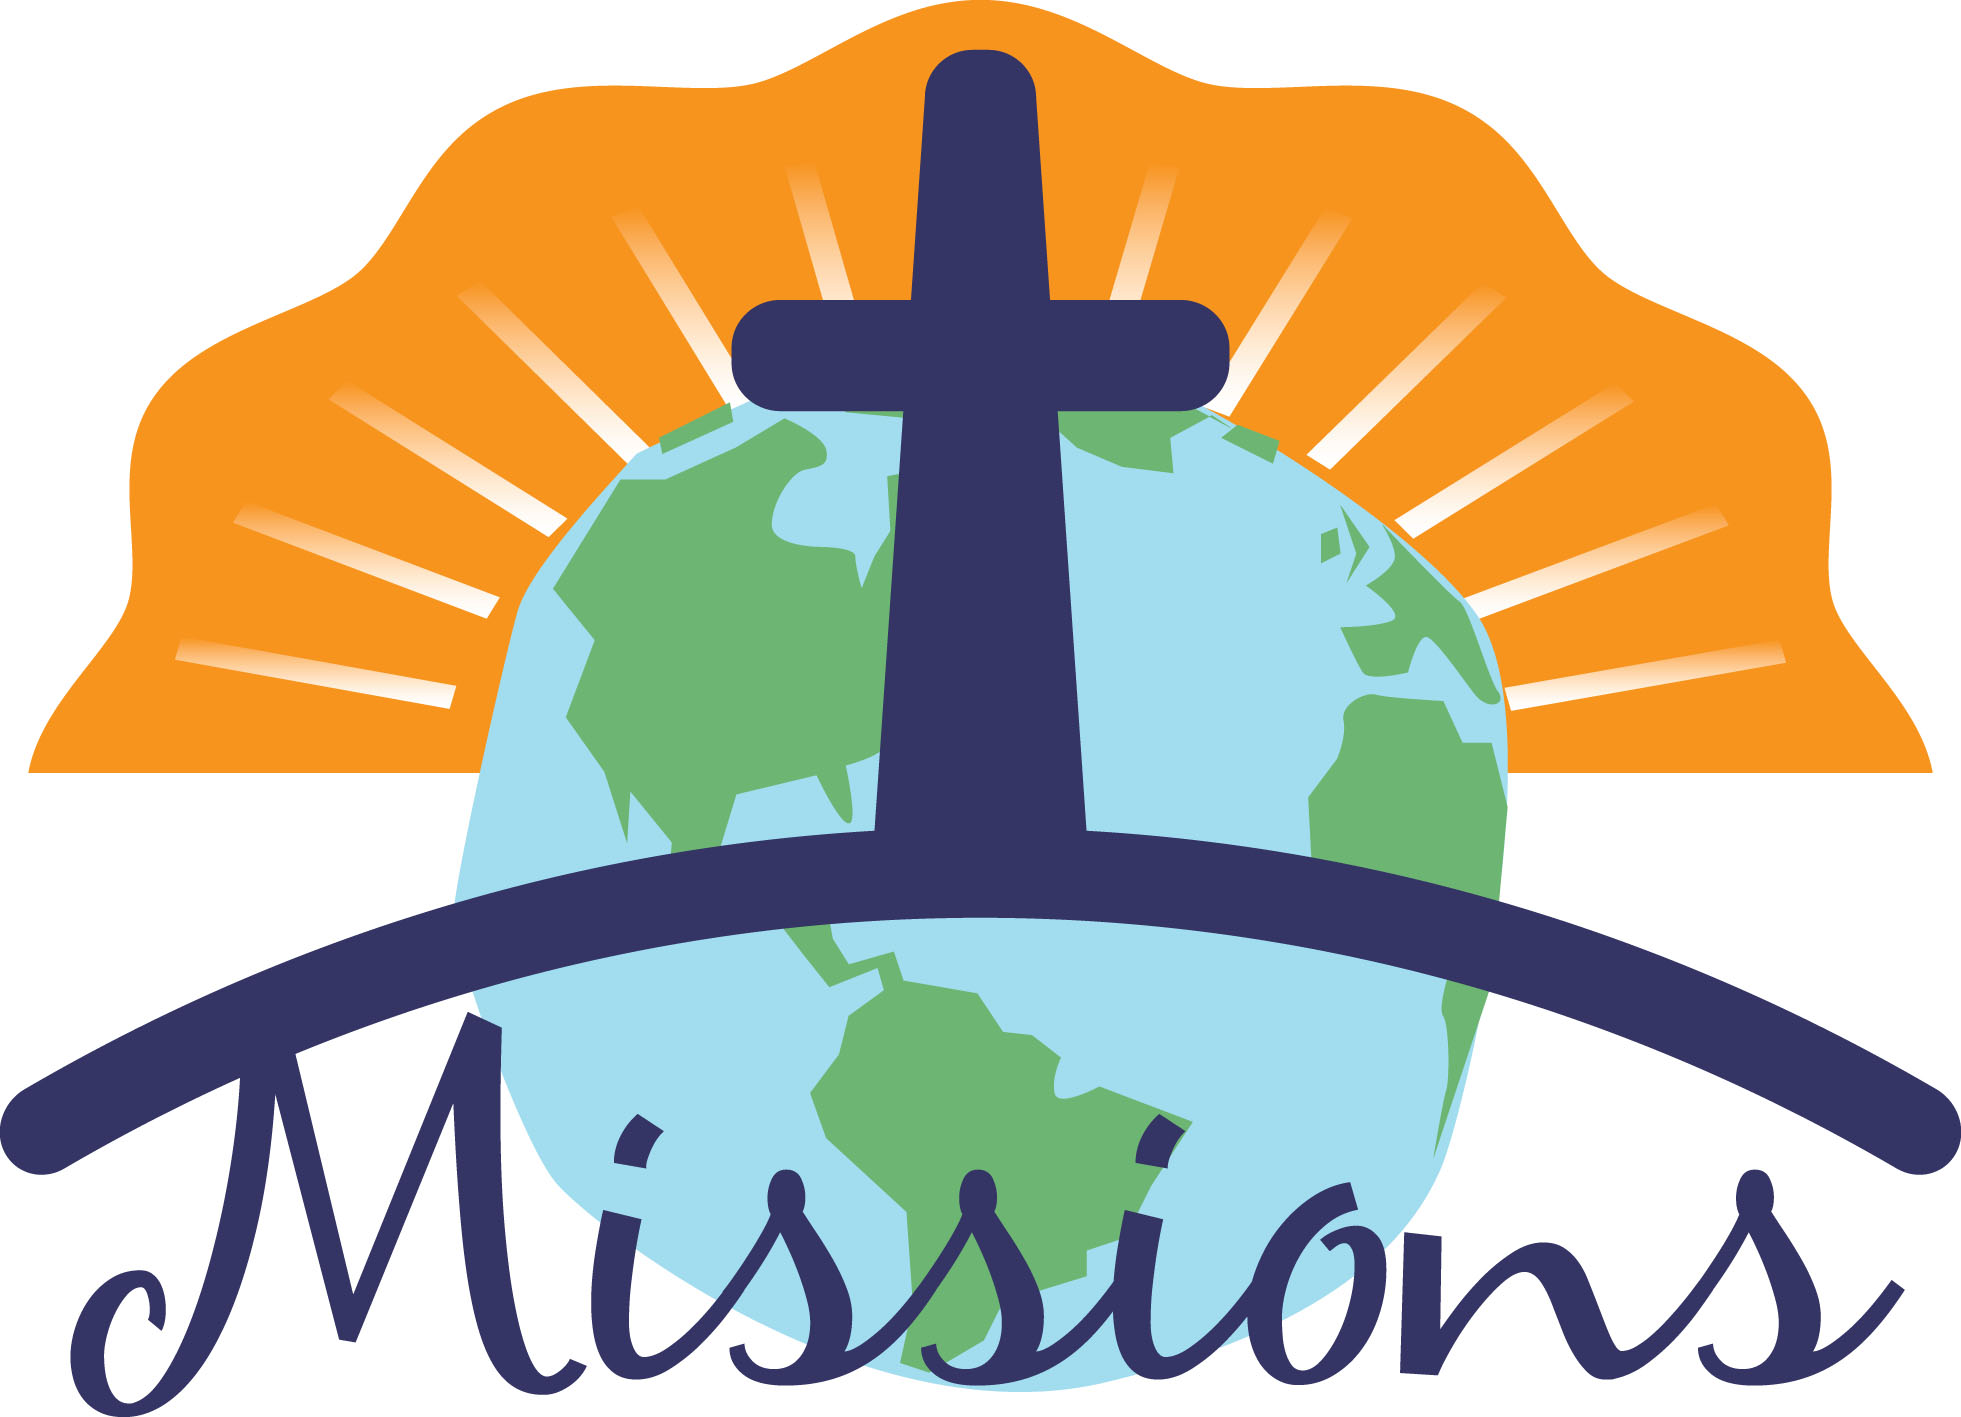 Missions clipart presbyterian. Church brotherhood cliparts free